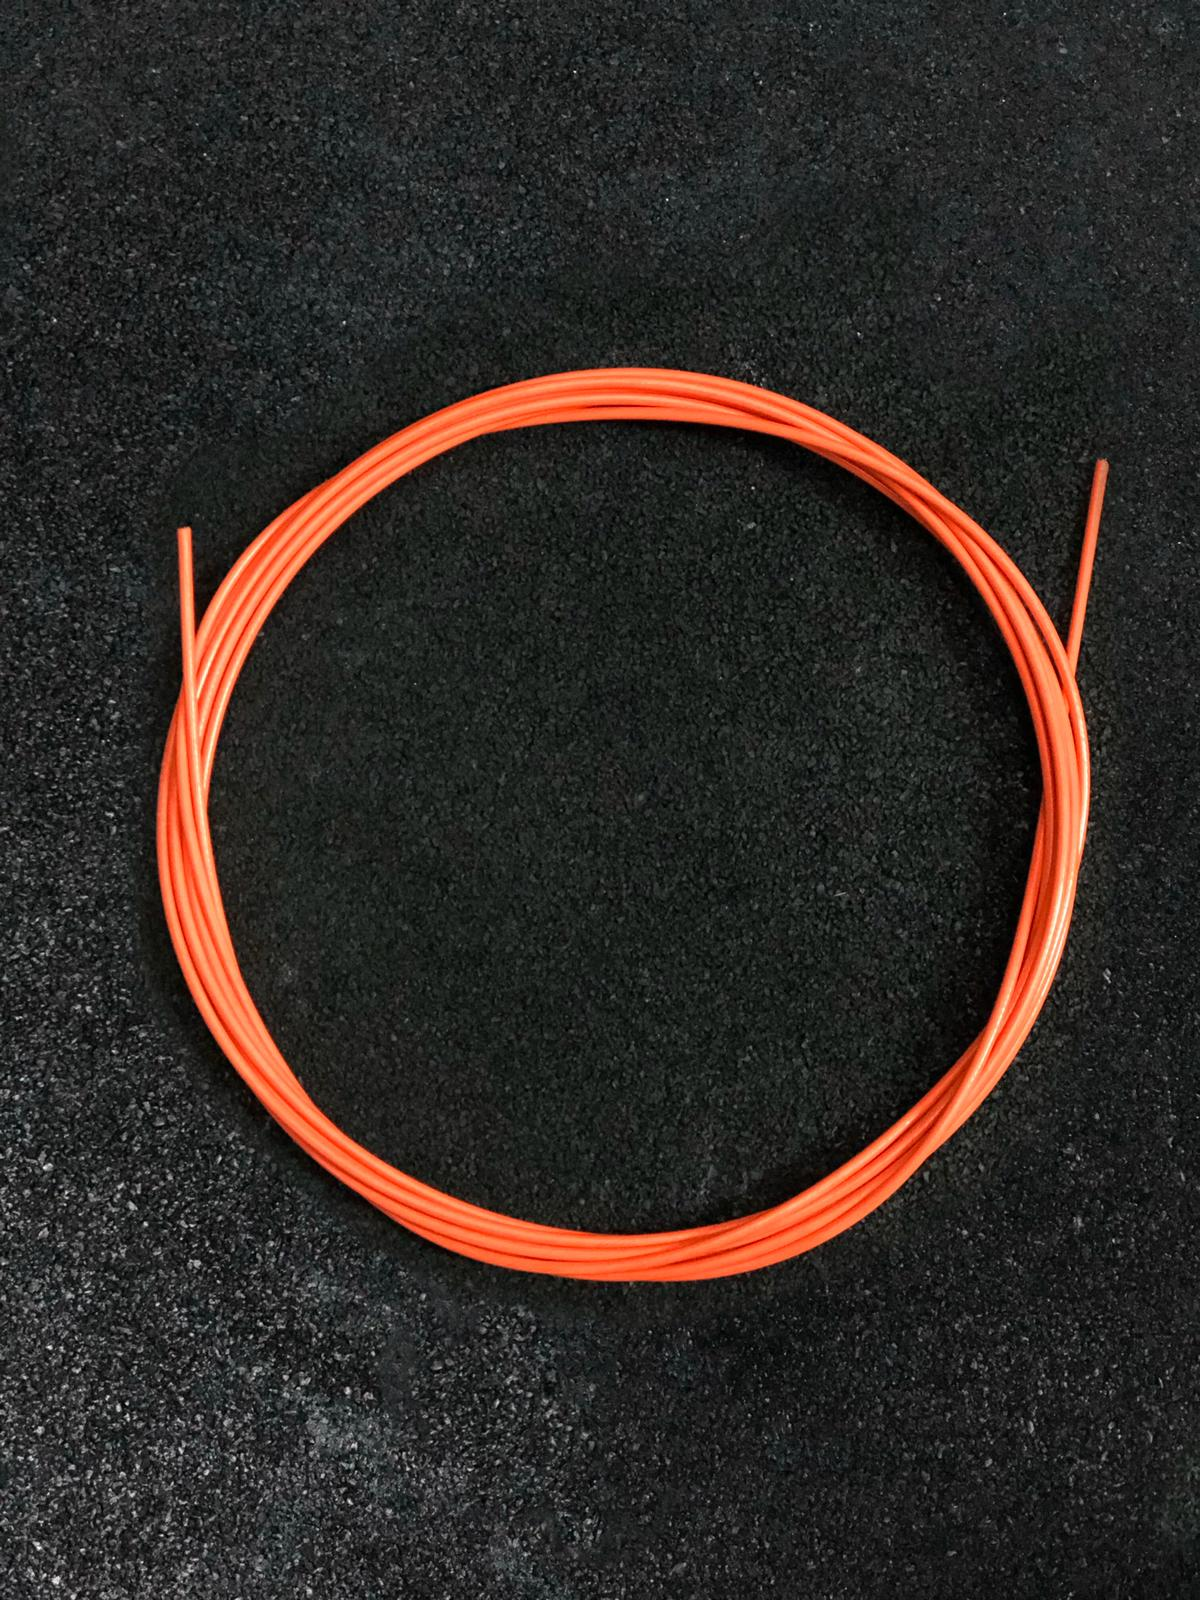 urope-cable-orange